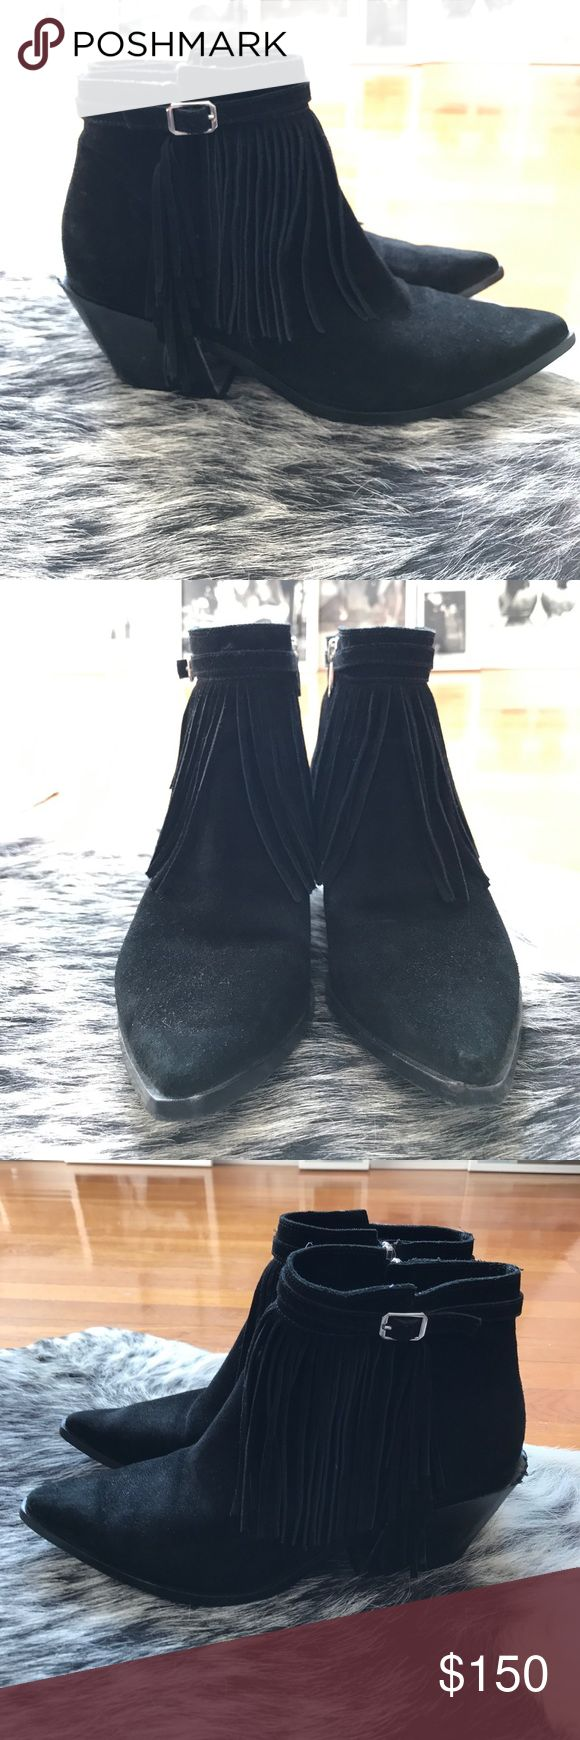 Sigerson Morrison Fringe Boots Booties Shoes Sigerson Morrison Fringe Boots Booties Shoes.  Such a haute Fringe trendy and comfortable shoes... :). Size 7 1/2.  Excellent condition. Sigerson Morrison Shoes Ankle Boots & Booties